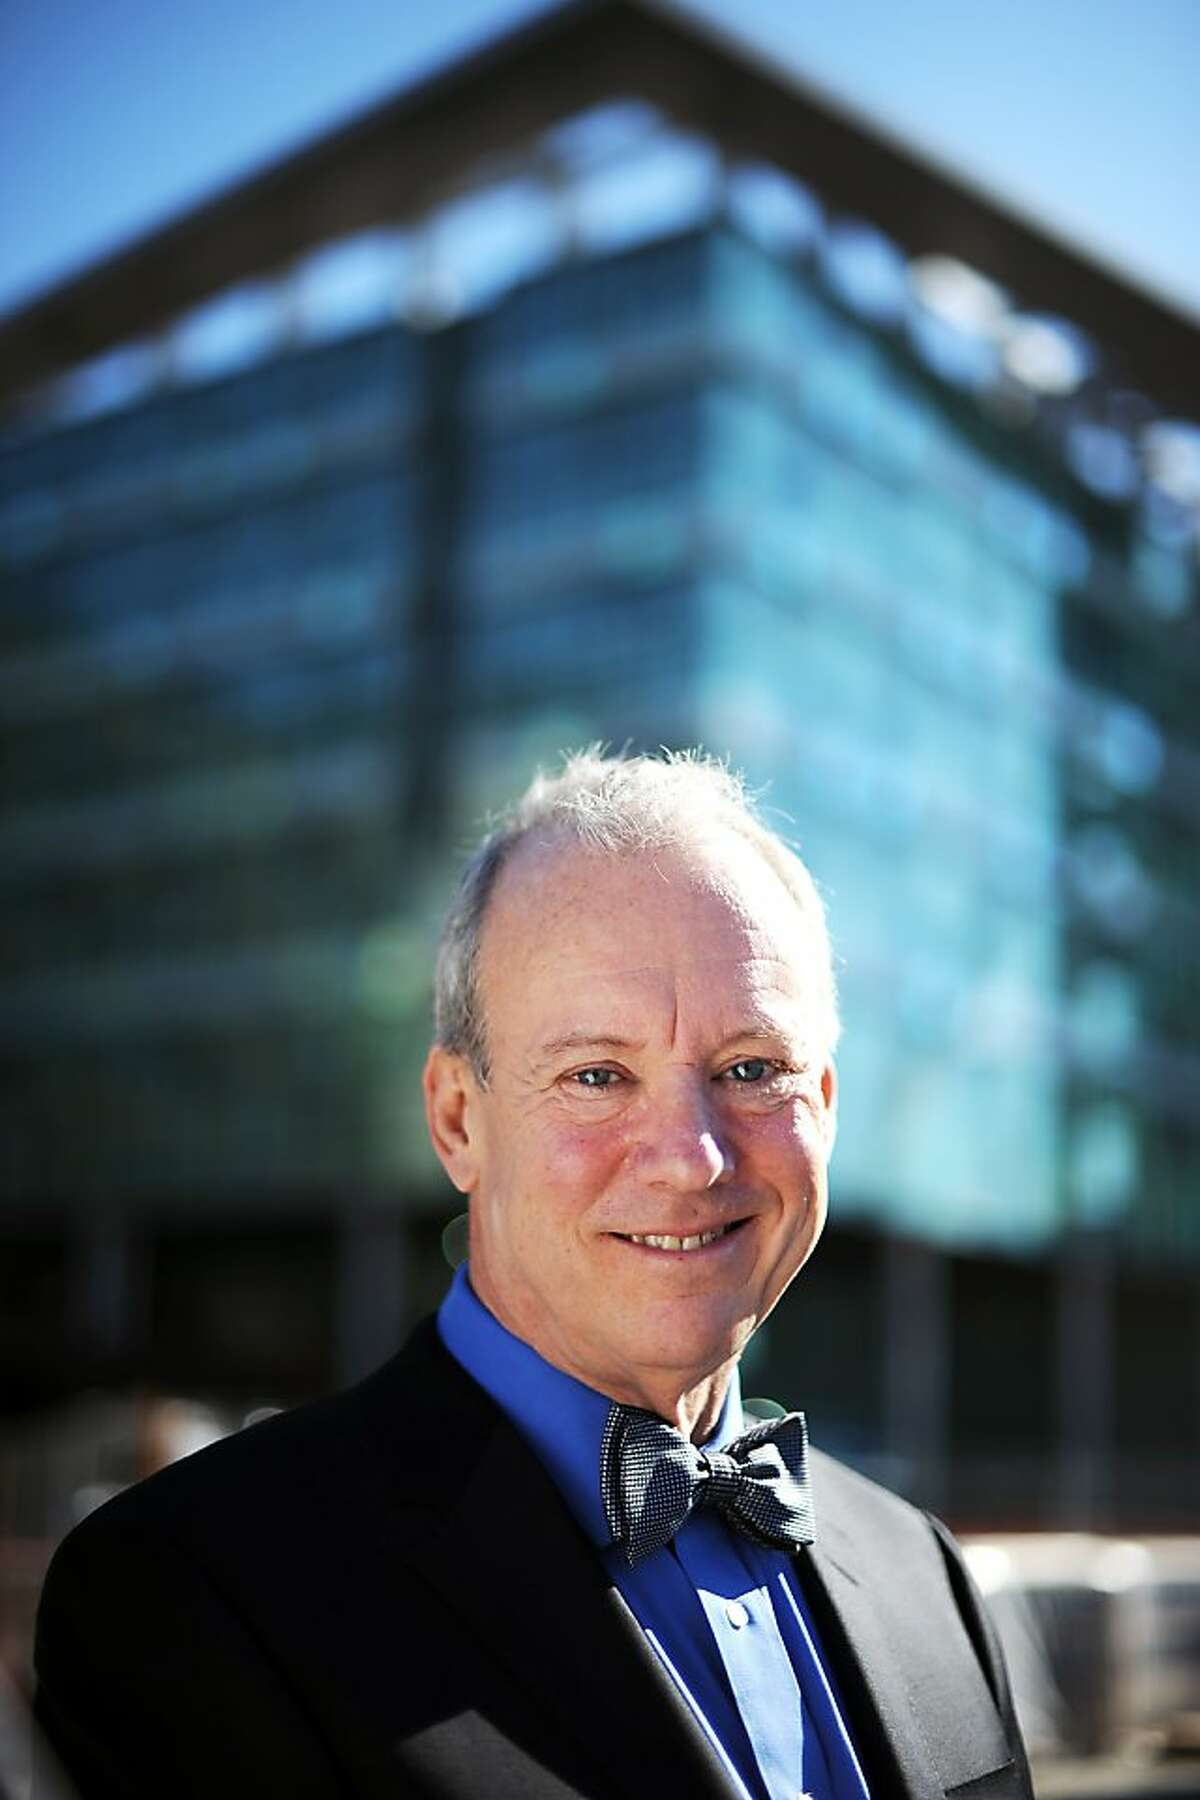 Bill McDonough, a leading architect in the field of sustainable architecture and general green design poses for a portrait at the UCSF-Mission Bay hospital, where he is part of the design team, in San Francisco, CA, Monday November 12th, 2012.